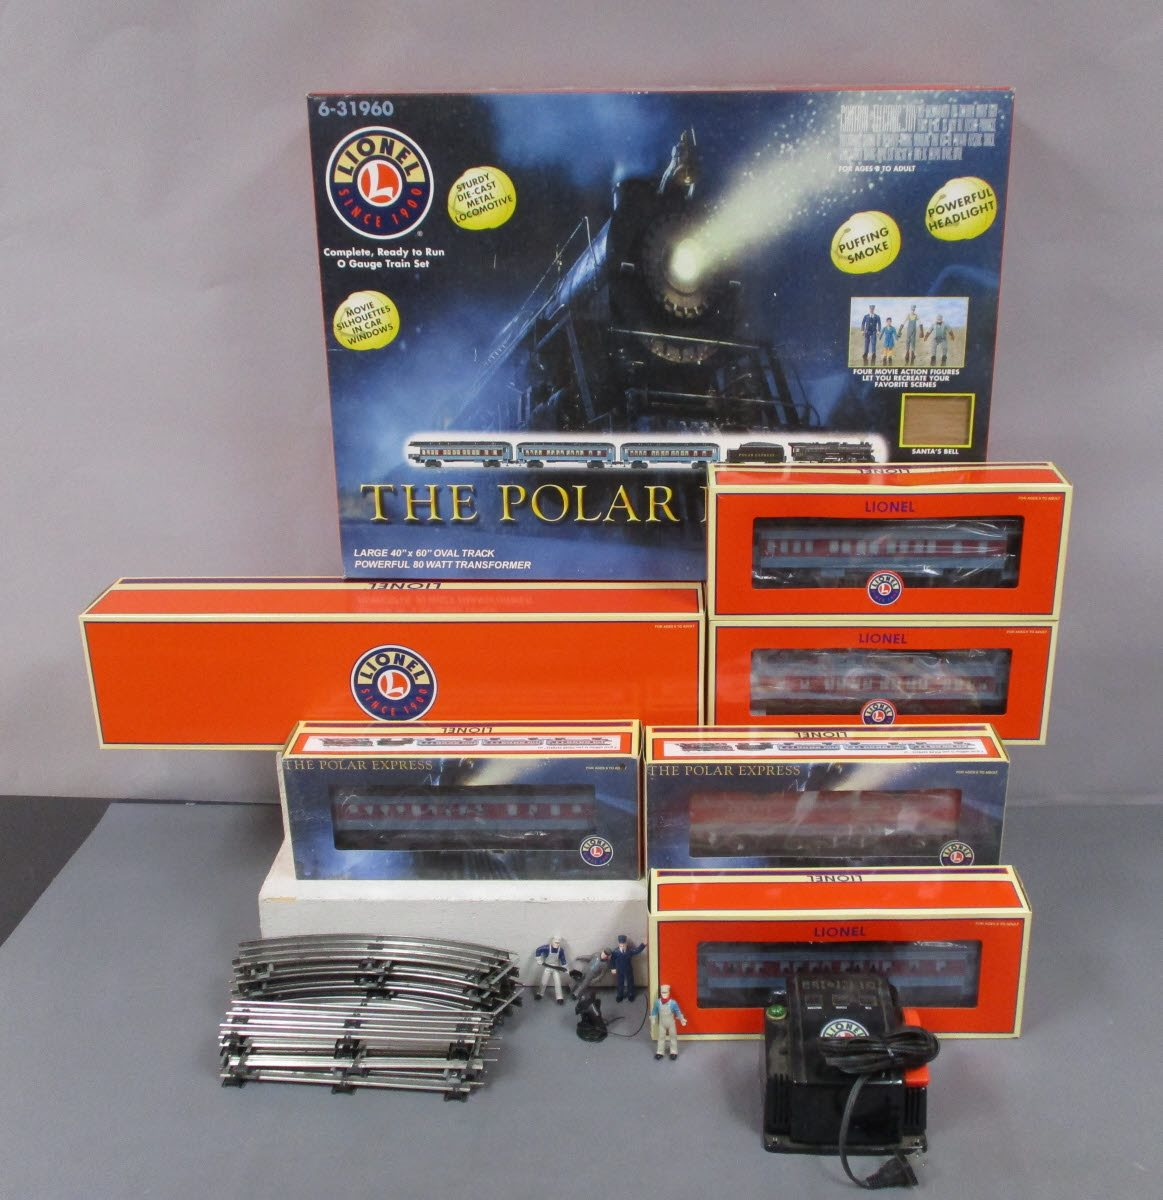 Buy Lionel 6-31960 Polar Express Train Set EX/Box | Trainz ...